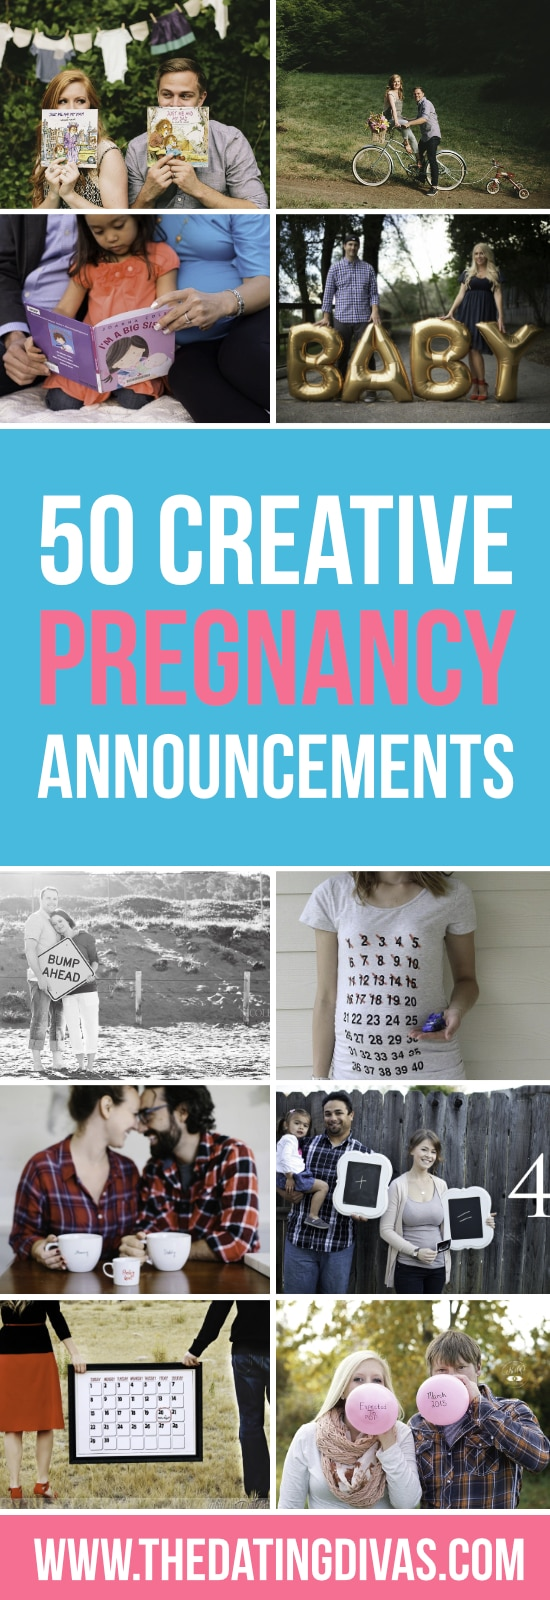 50 Creative Pregnancy Announcments